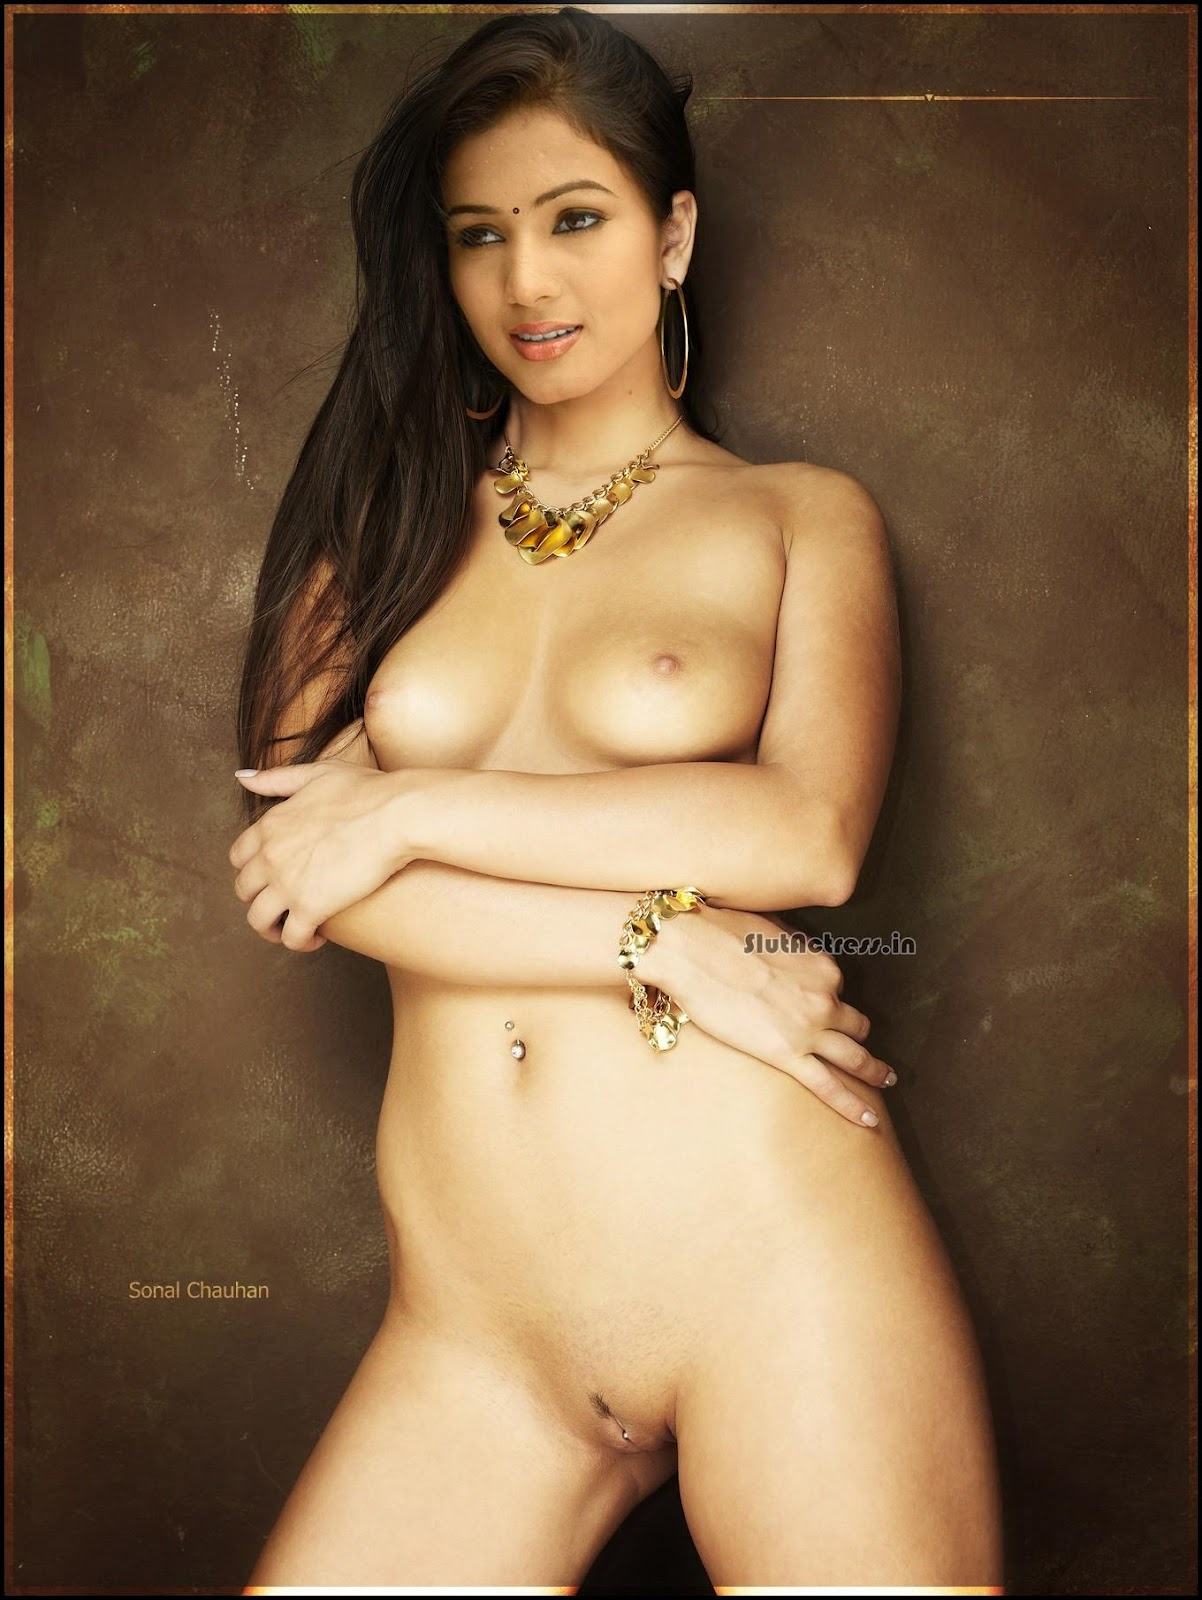 Sonali nude photo